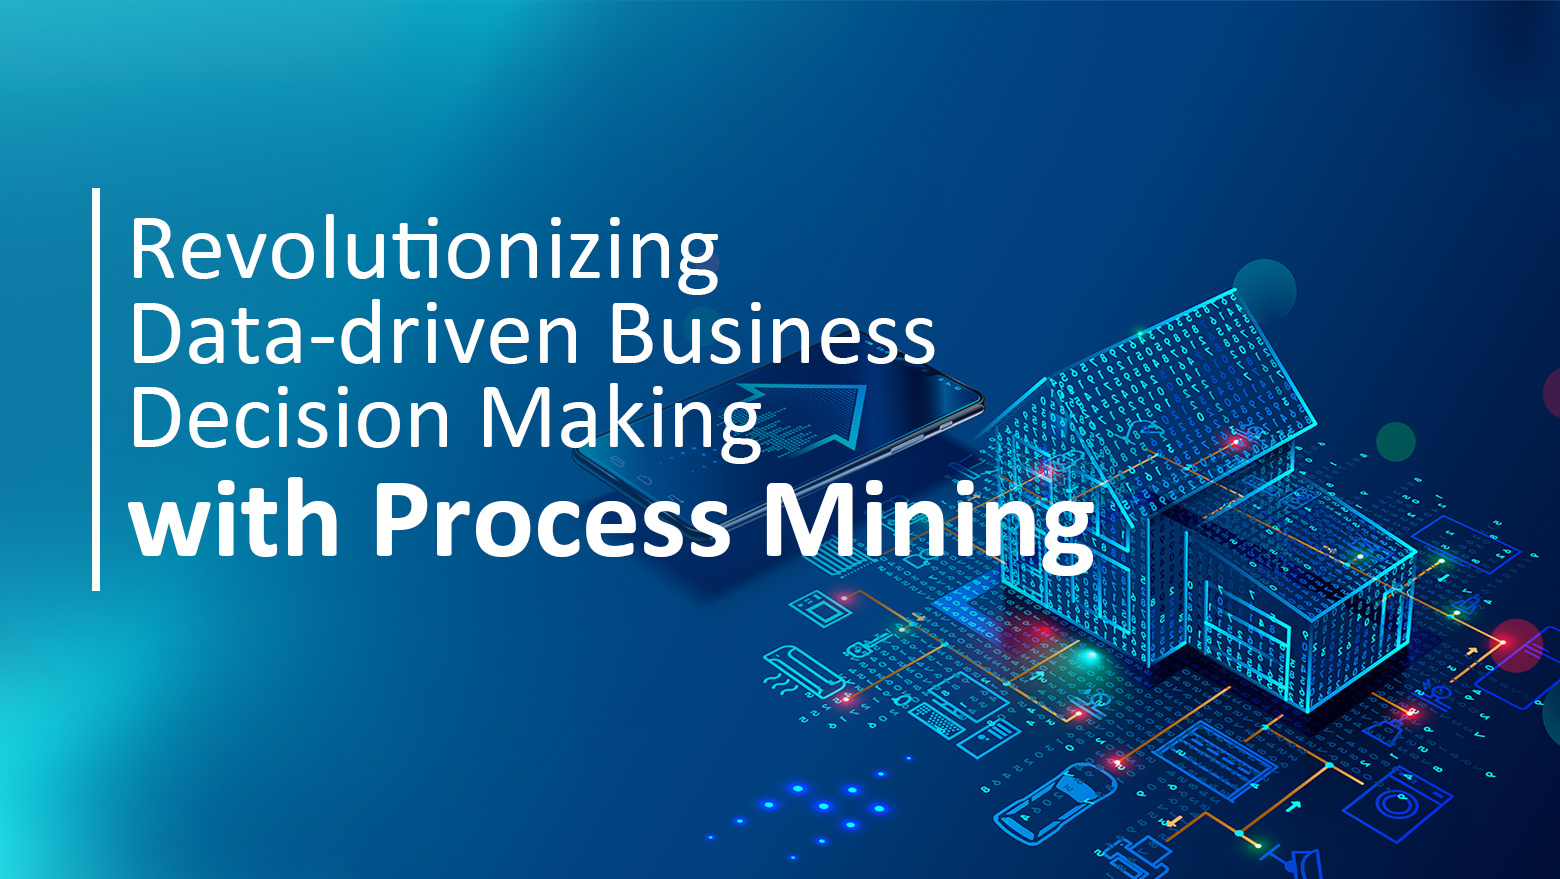 Revolutionizing Data-driven Business Decision Making with Process Mining banner